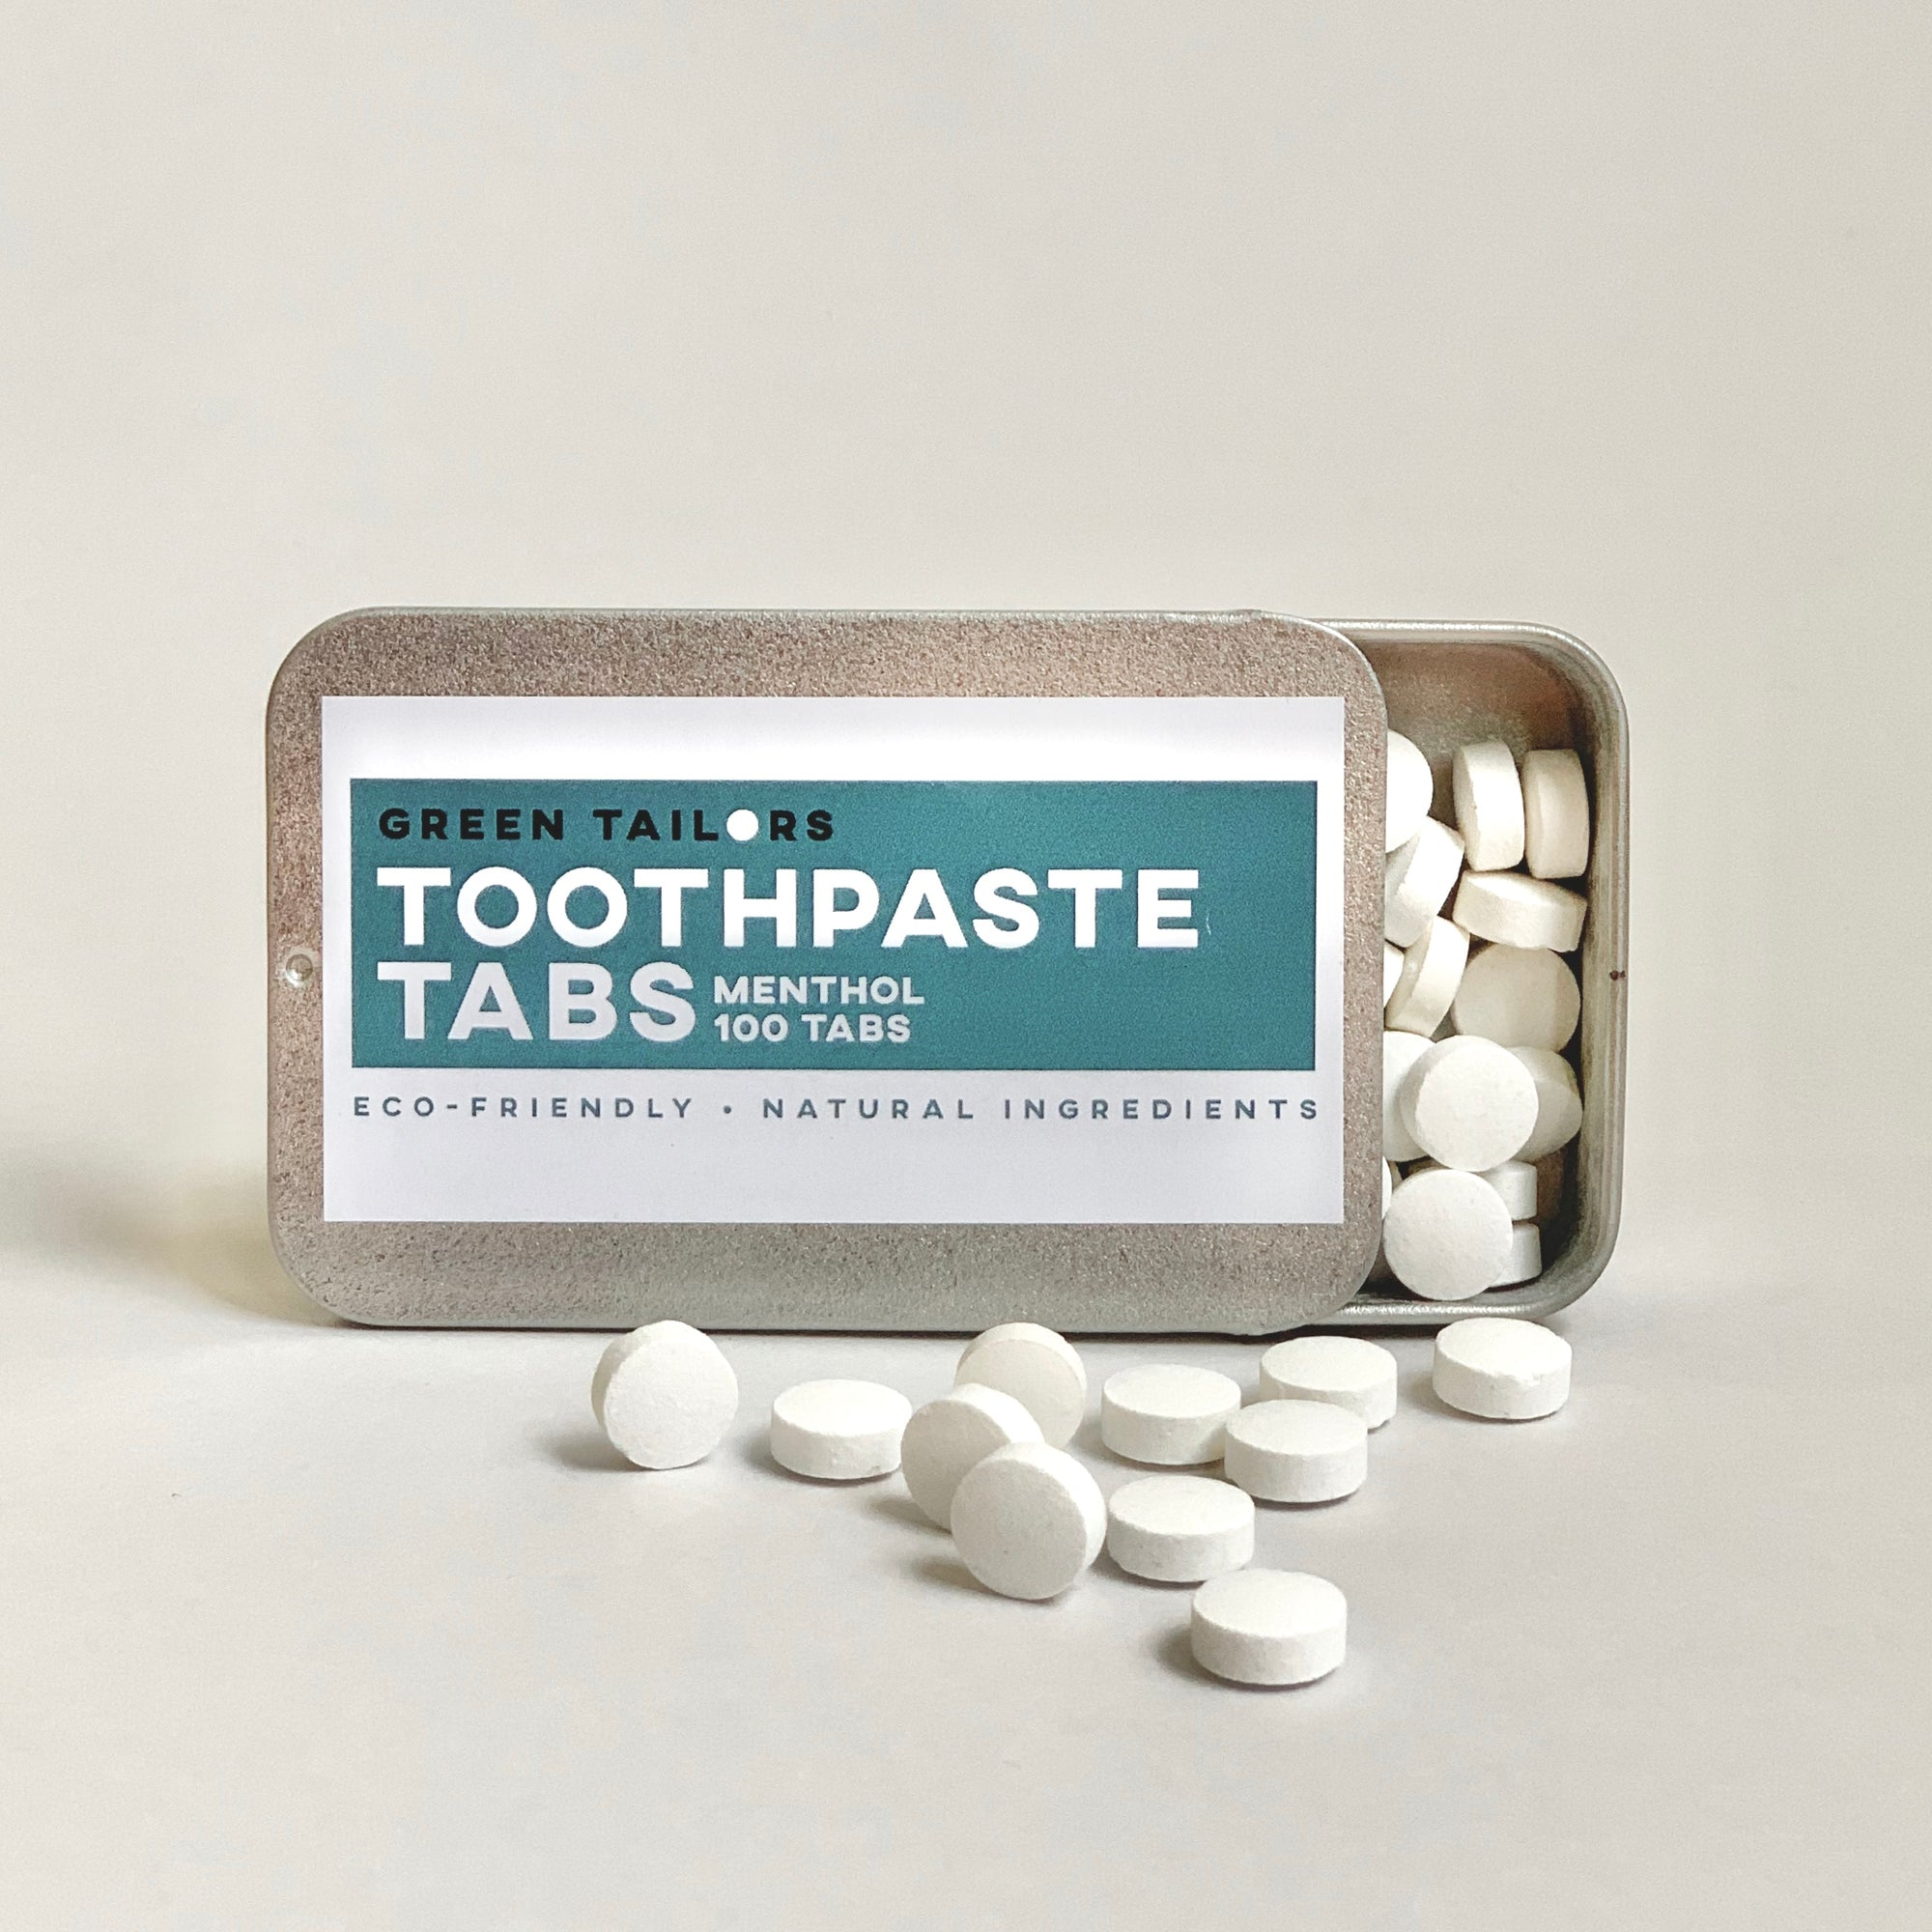 Toothpaste tabs: it's just like toothpaste, but without waste!